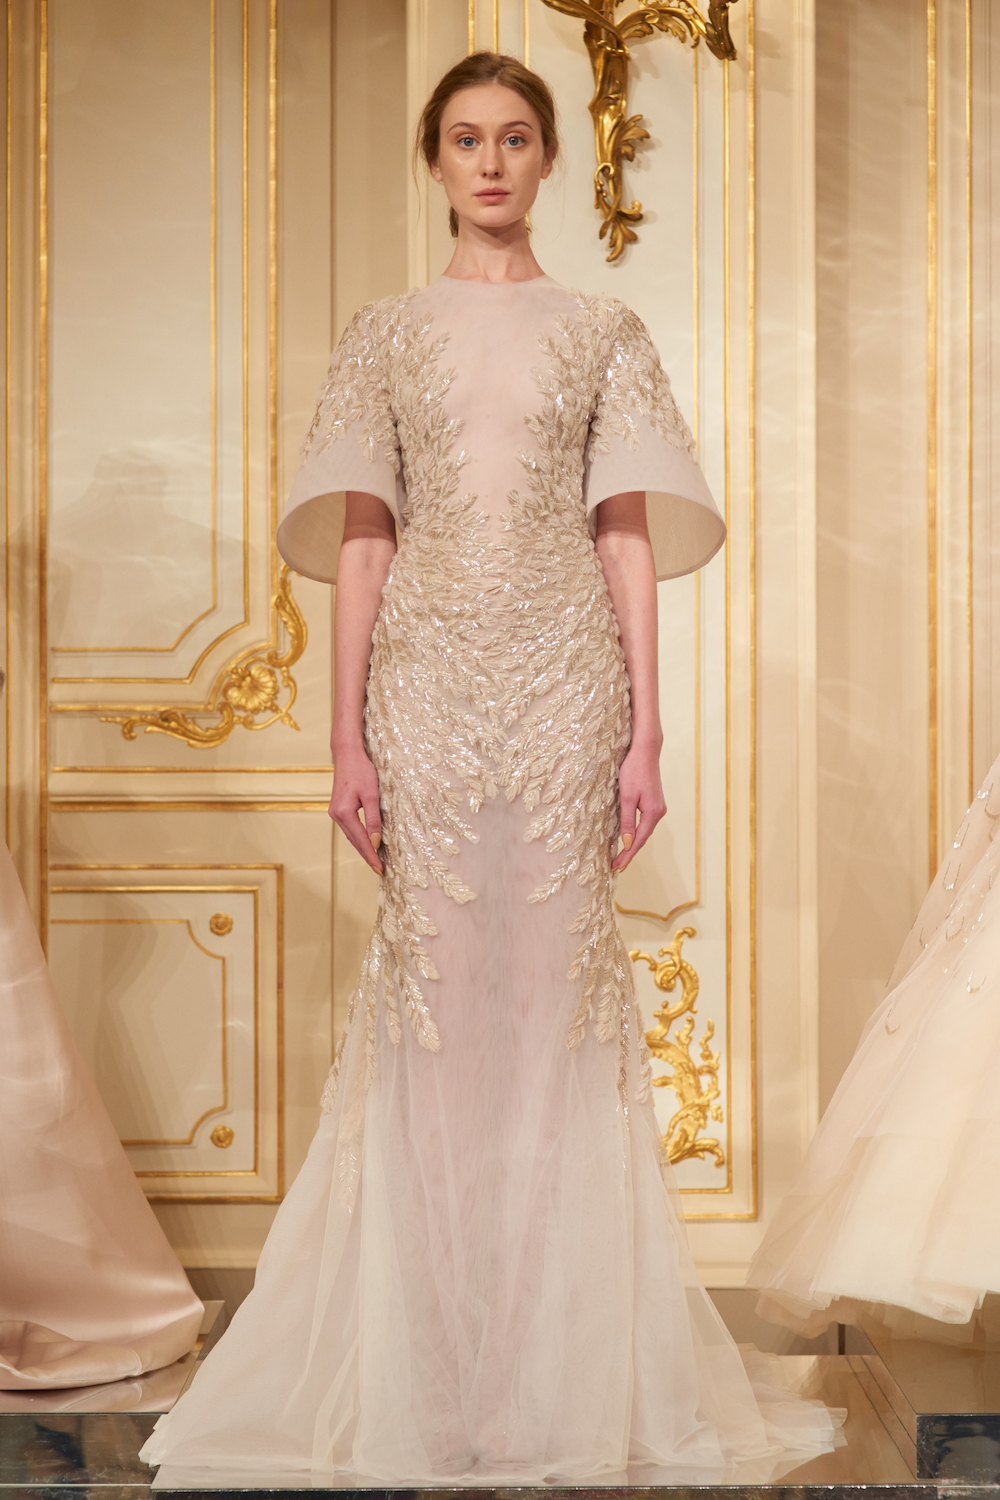 An Exclusive Look at the Making of Rami Al Ali's Fall Couture Collection